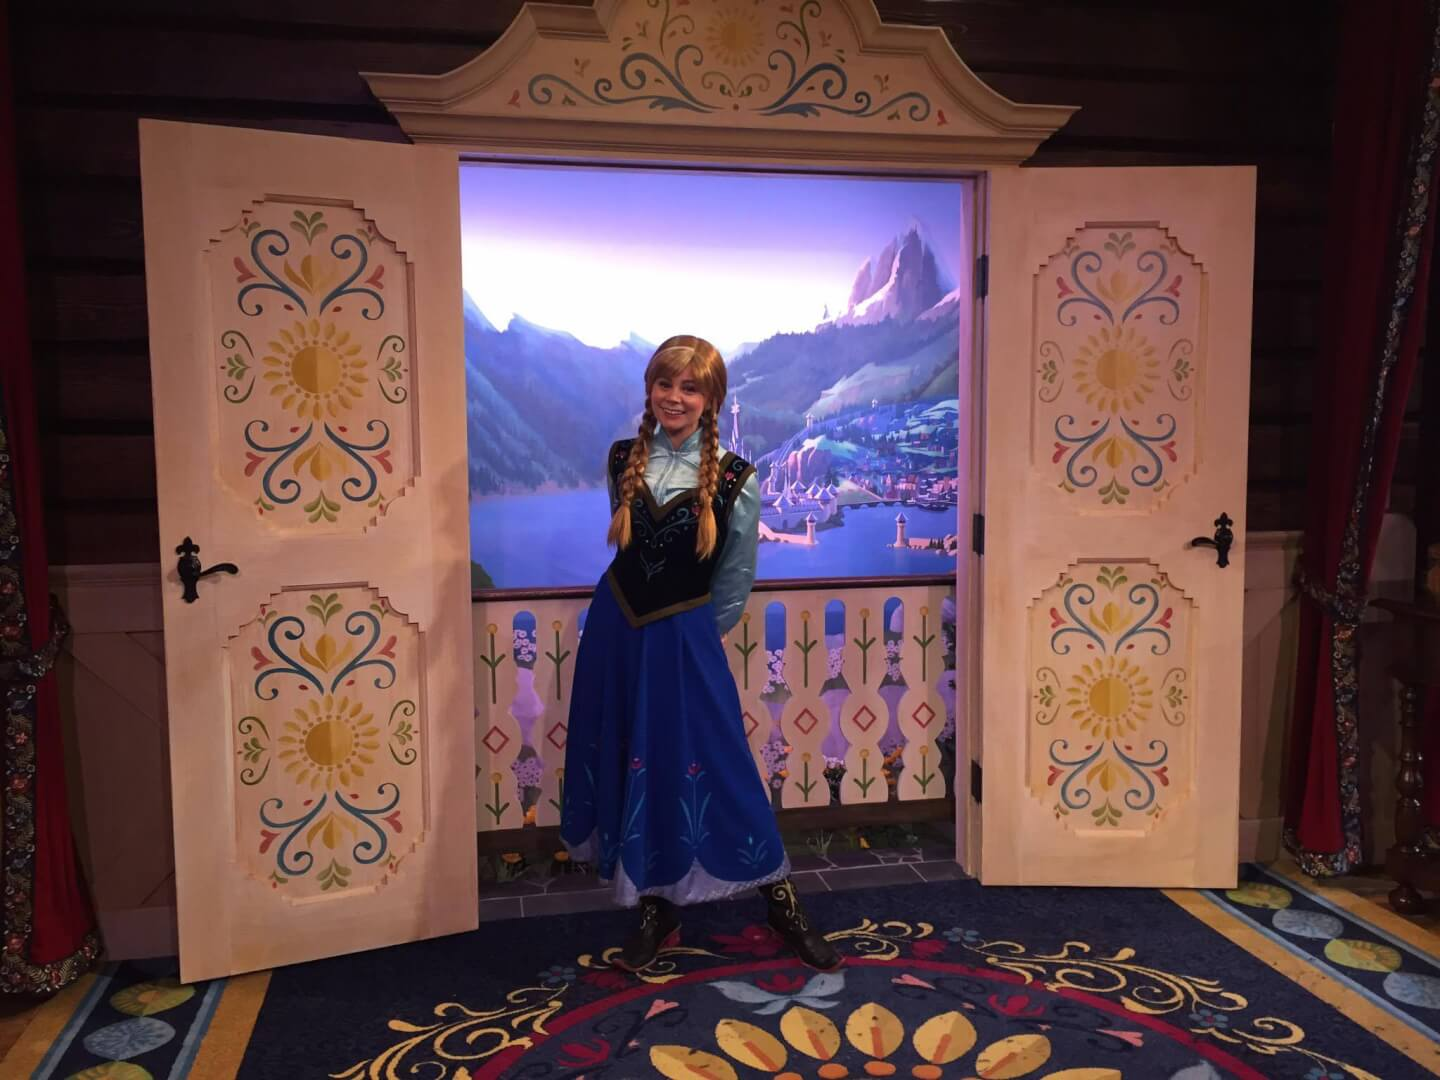 Video New Anna And Elsa Frozen Meet And Greet In The Royal